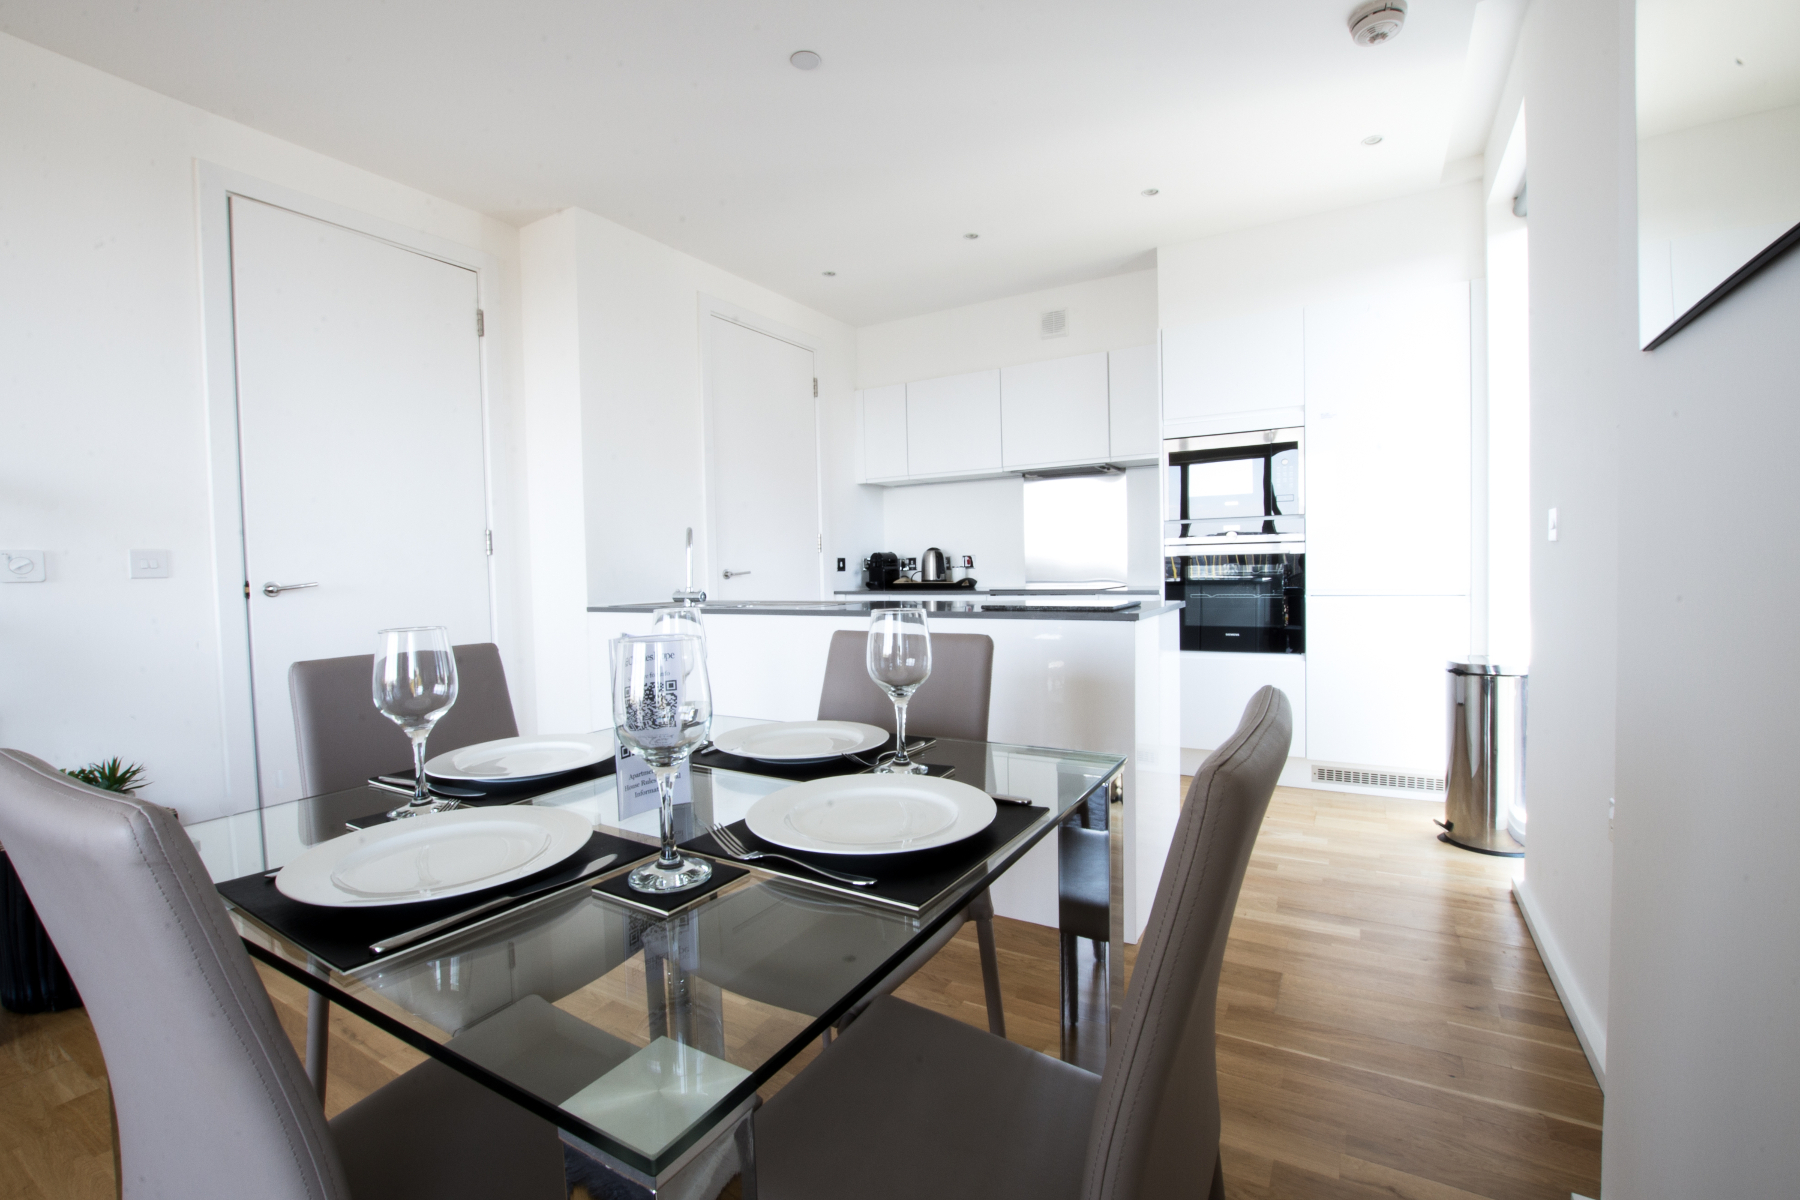 Kitchen at Millharbour Apartments, Isle of Dogs, London - Citybase Apartments